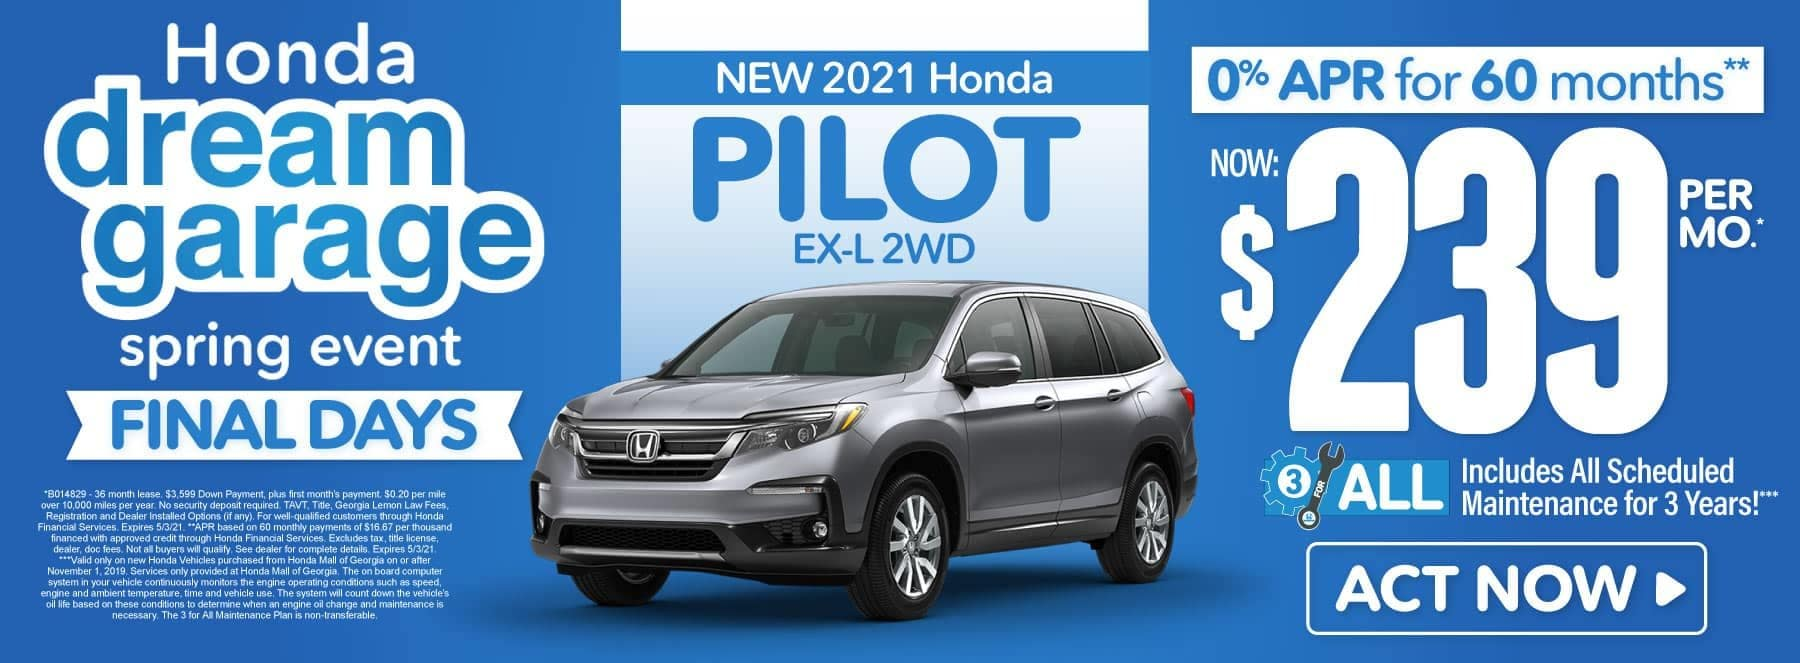 New 2021 Honda Pilot | Now $239 per month | Act Now